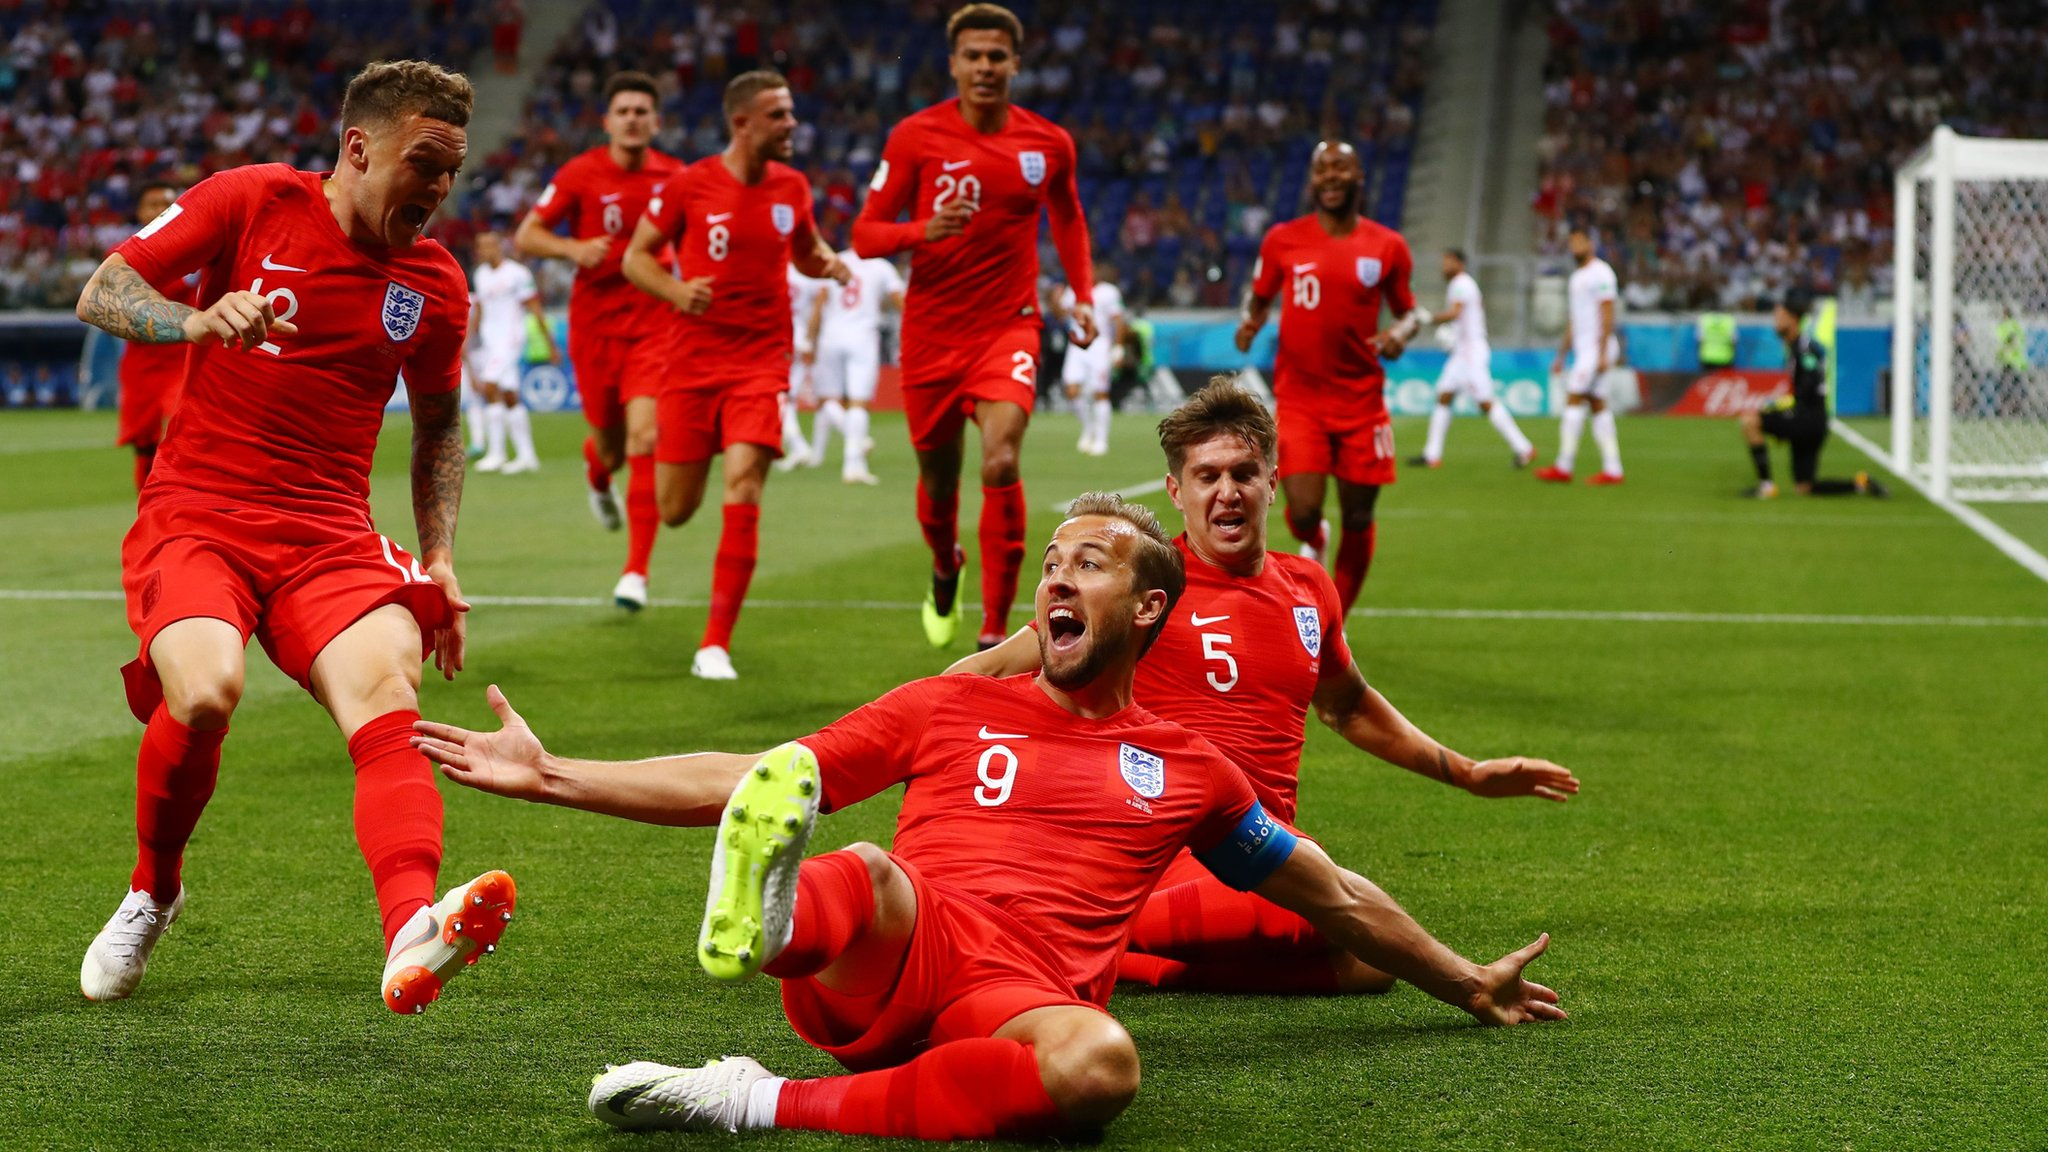 Late Kane goal rescues win for England against Tunisia - highlights & report